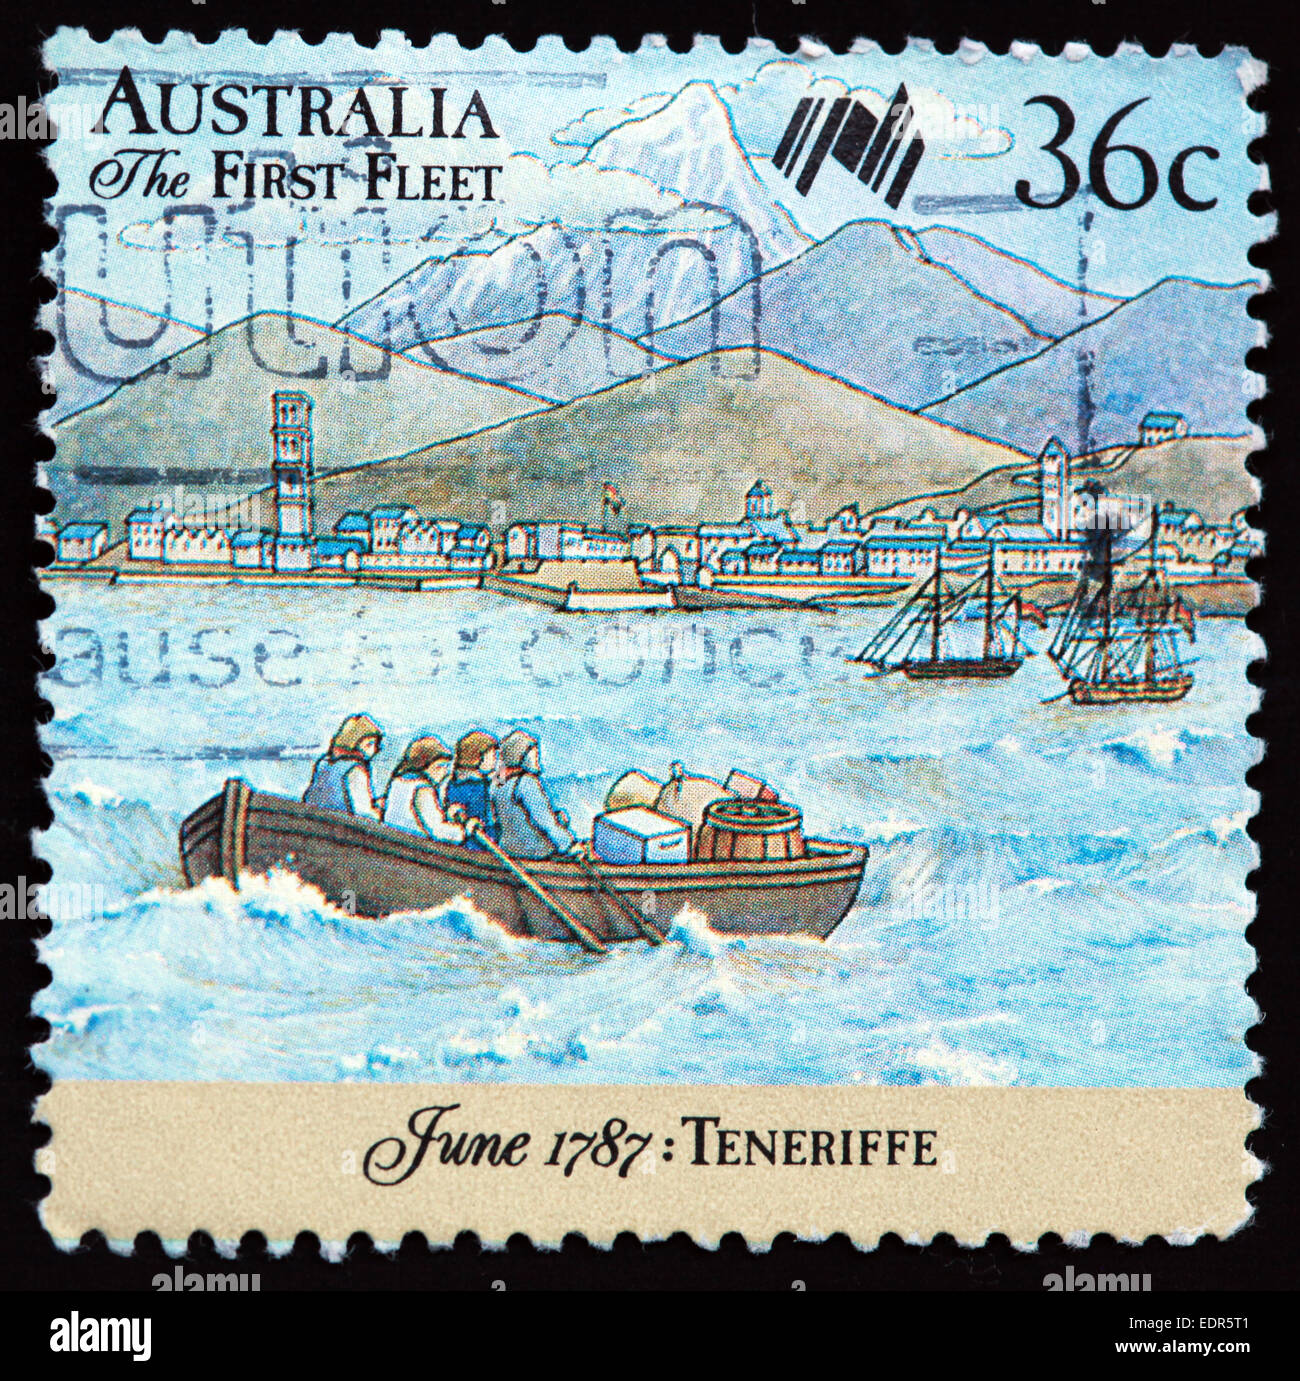 Used and postmarked Australia / Austrailian Stamp 36c The first Fleet June 1787 Teneriffe - Stock Image